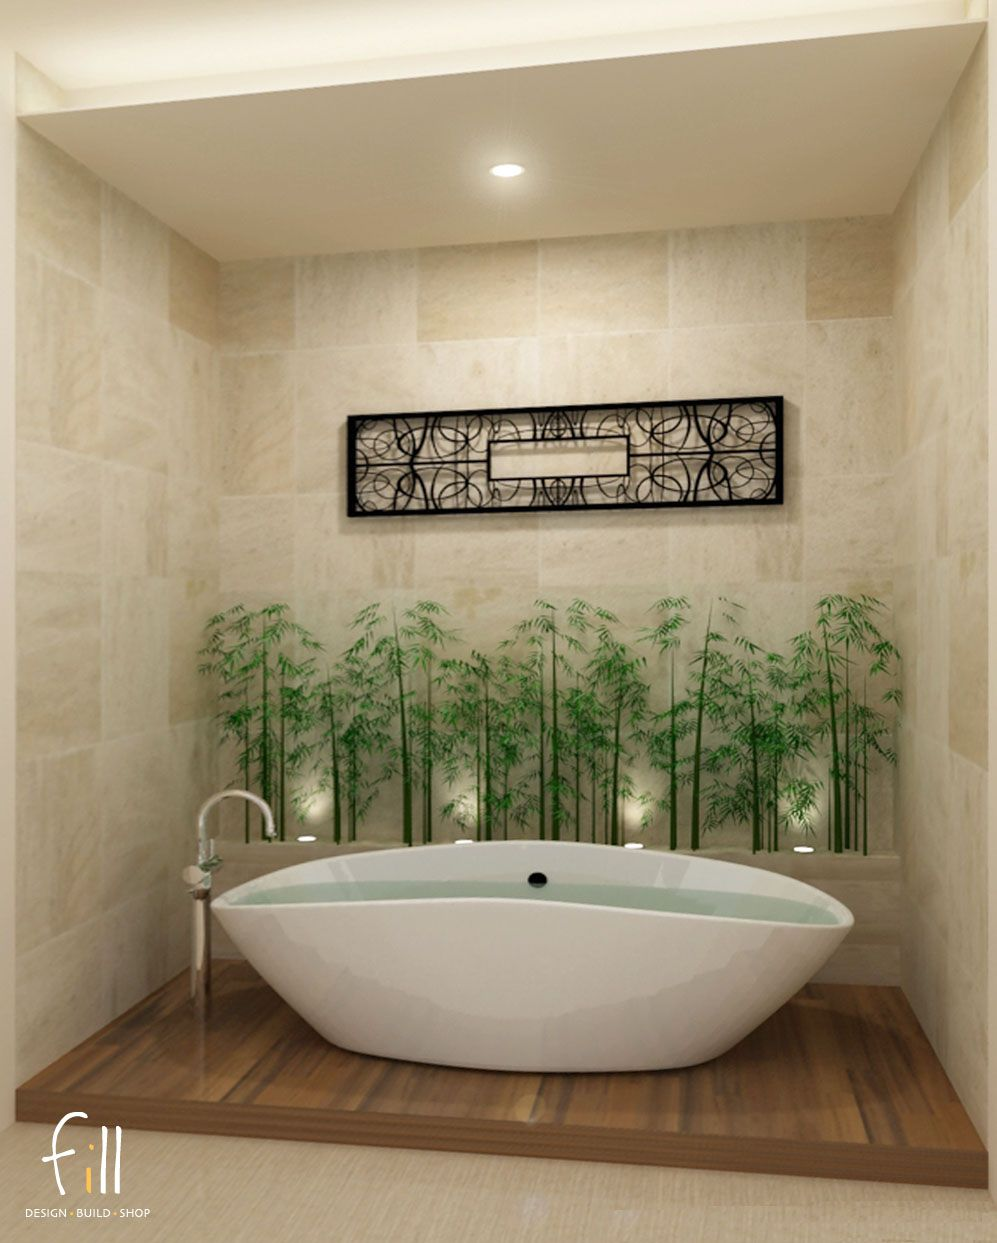 Spa treatment room Tub perfection Just add